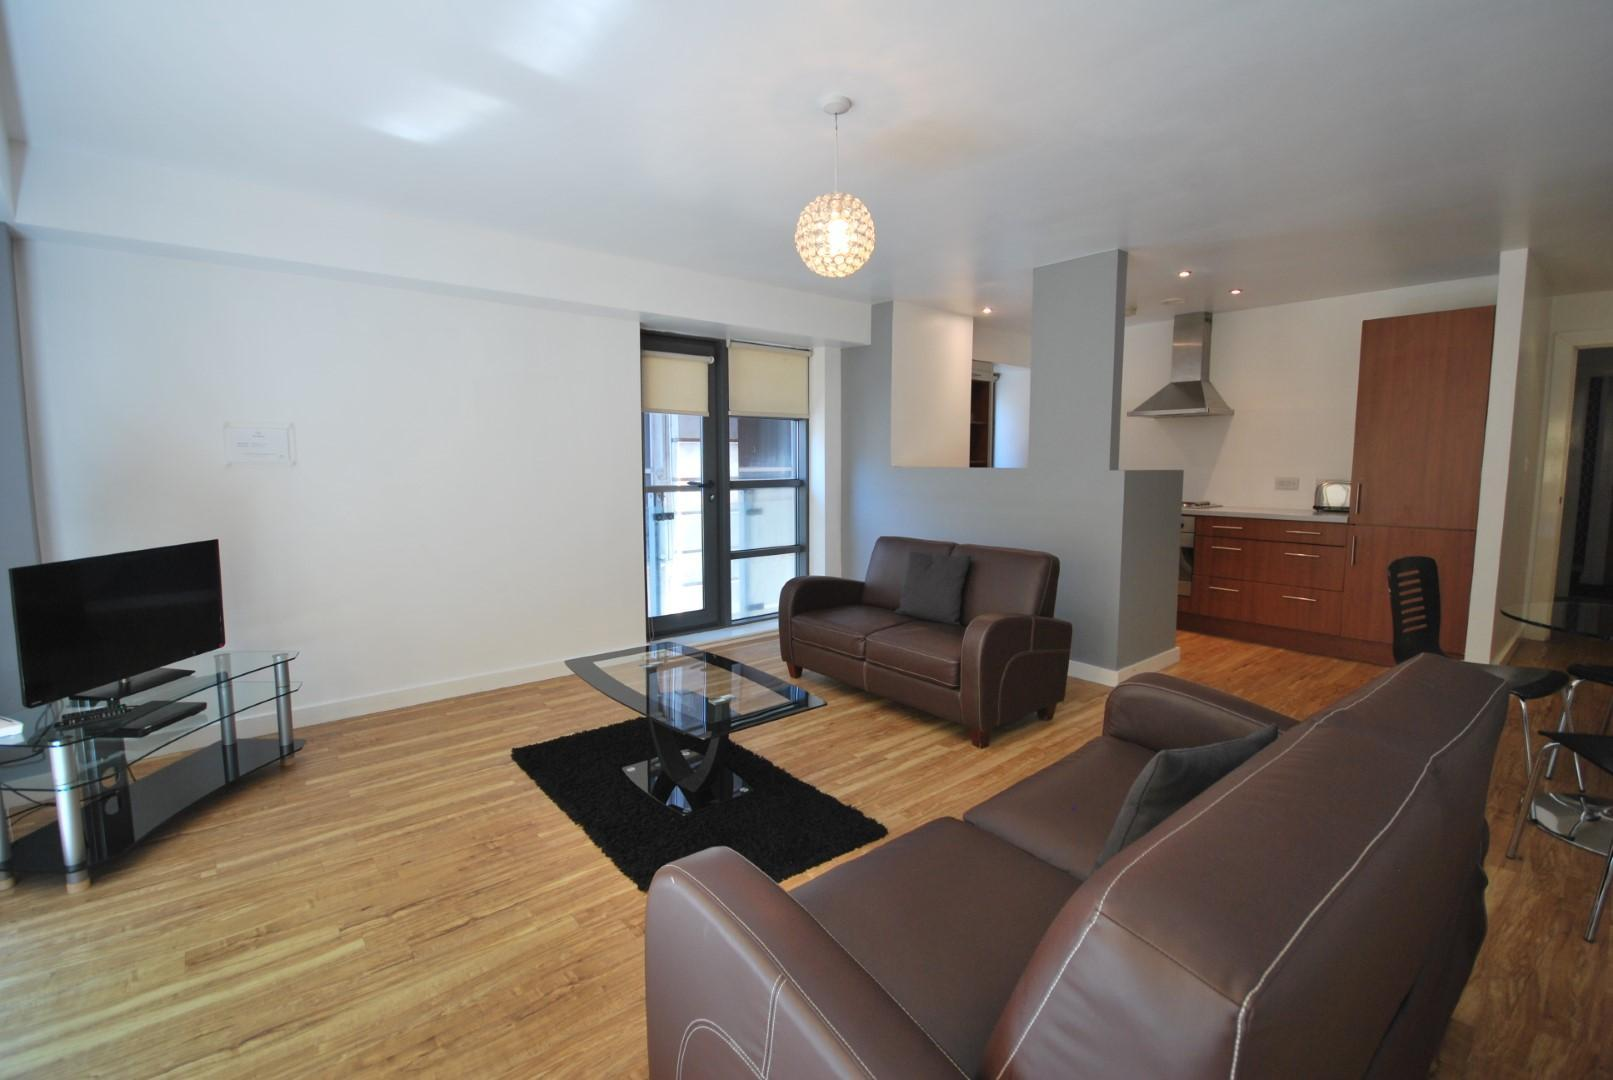 2 Bed Apartment Manchester Best Price On Atana Apartments In Manchester Reviews